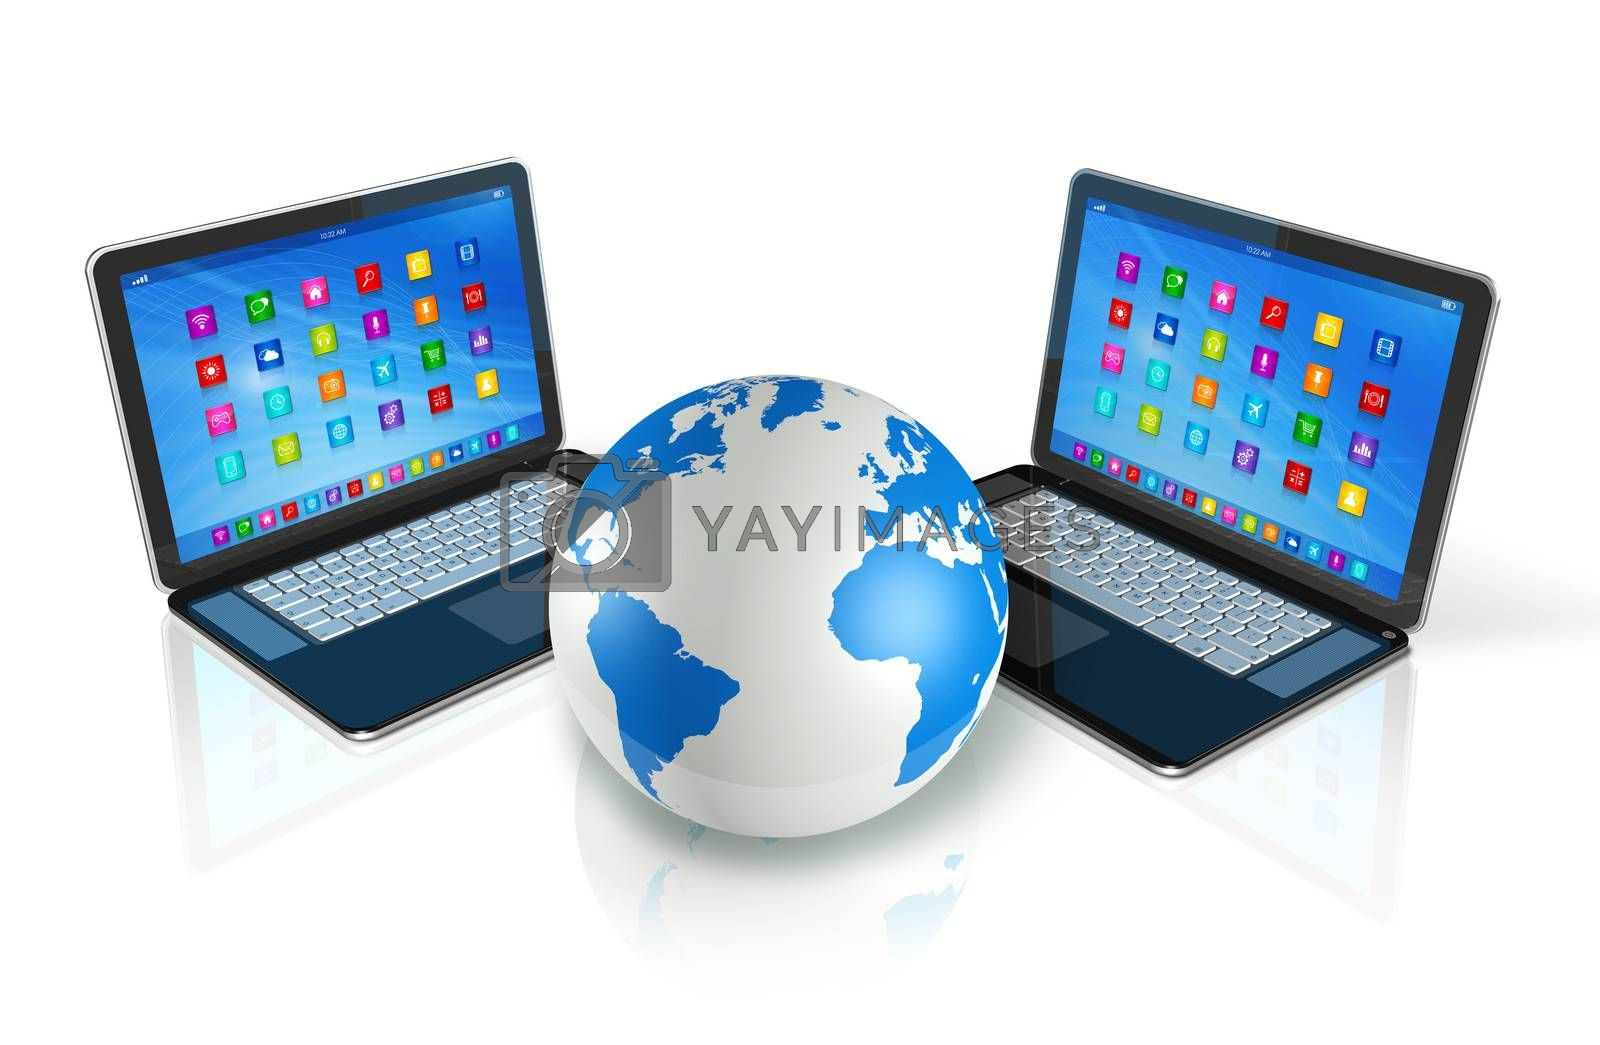 3D Laptop Computers around World Globe - apps icons interface - isolated on white